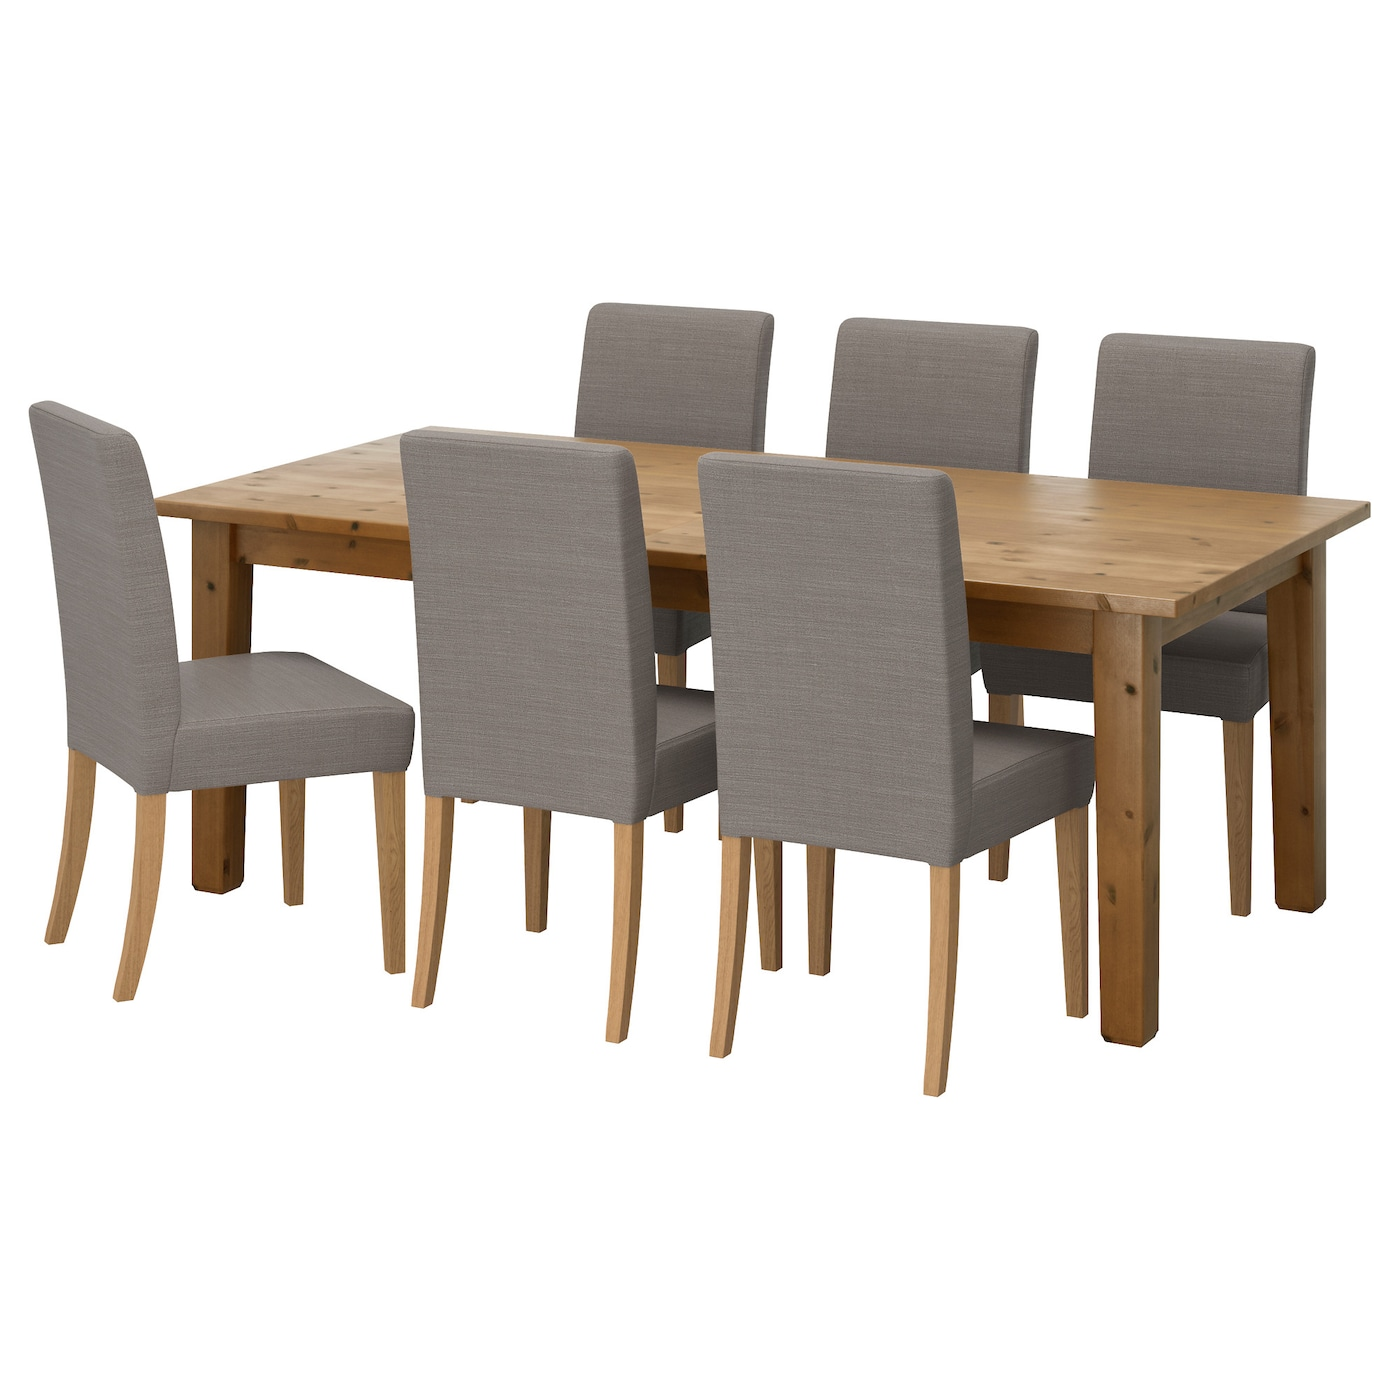 "HENRIKSDAL STORN""S Table and 6 chairs Antique stain nolhaga grey"